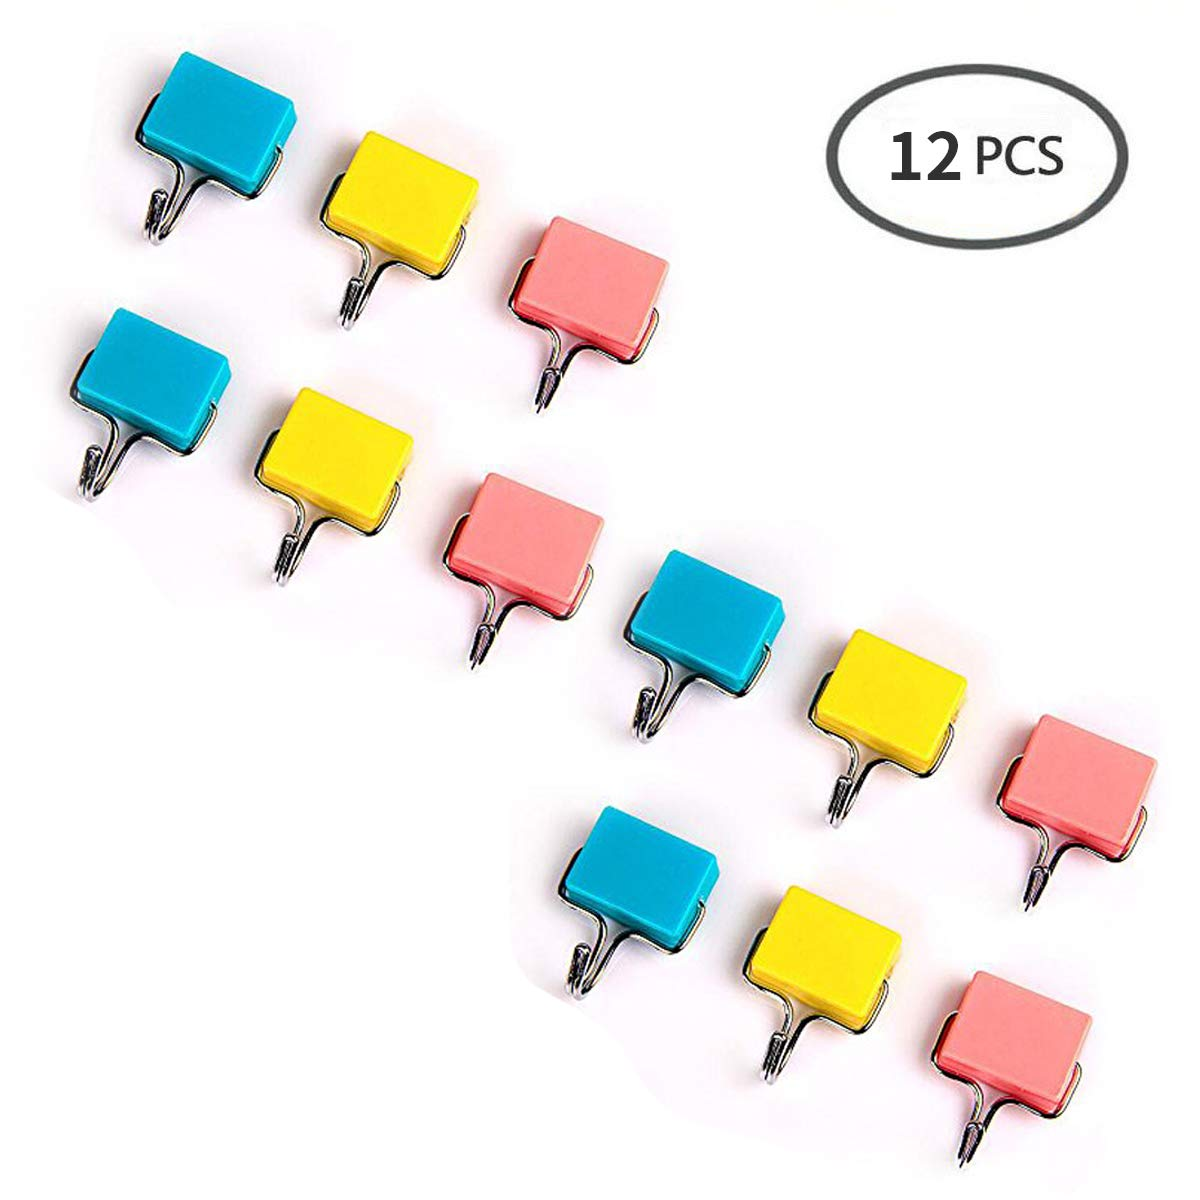 (12 Pcs)Neodymium Magnetic Hooks, Refrigerator Magnets Creative Magnetic Hooks, Super Strong Magnetic Hooks, Colorful Magnetic Hooks, Powerful Creative Tools for Home Kitchen Workplace Office Garage